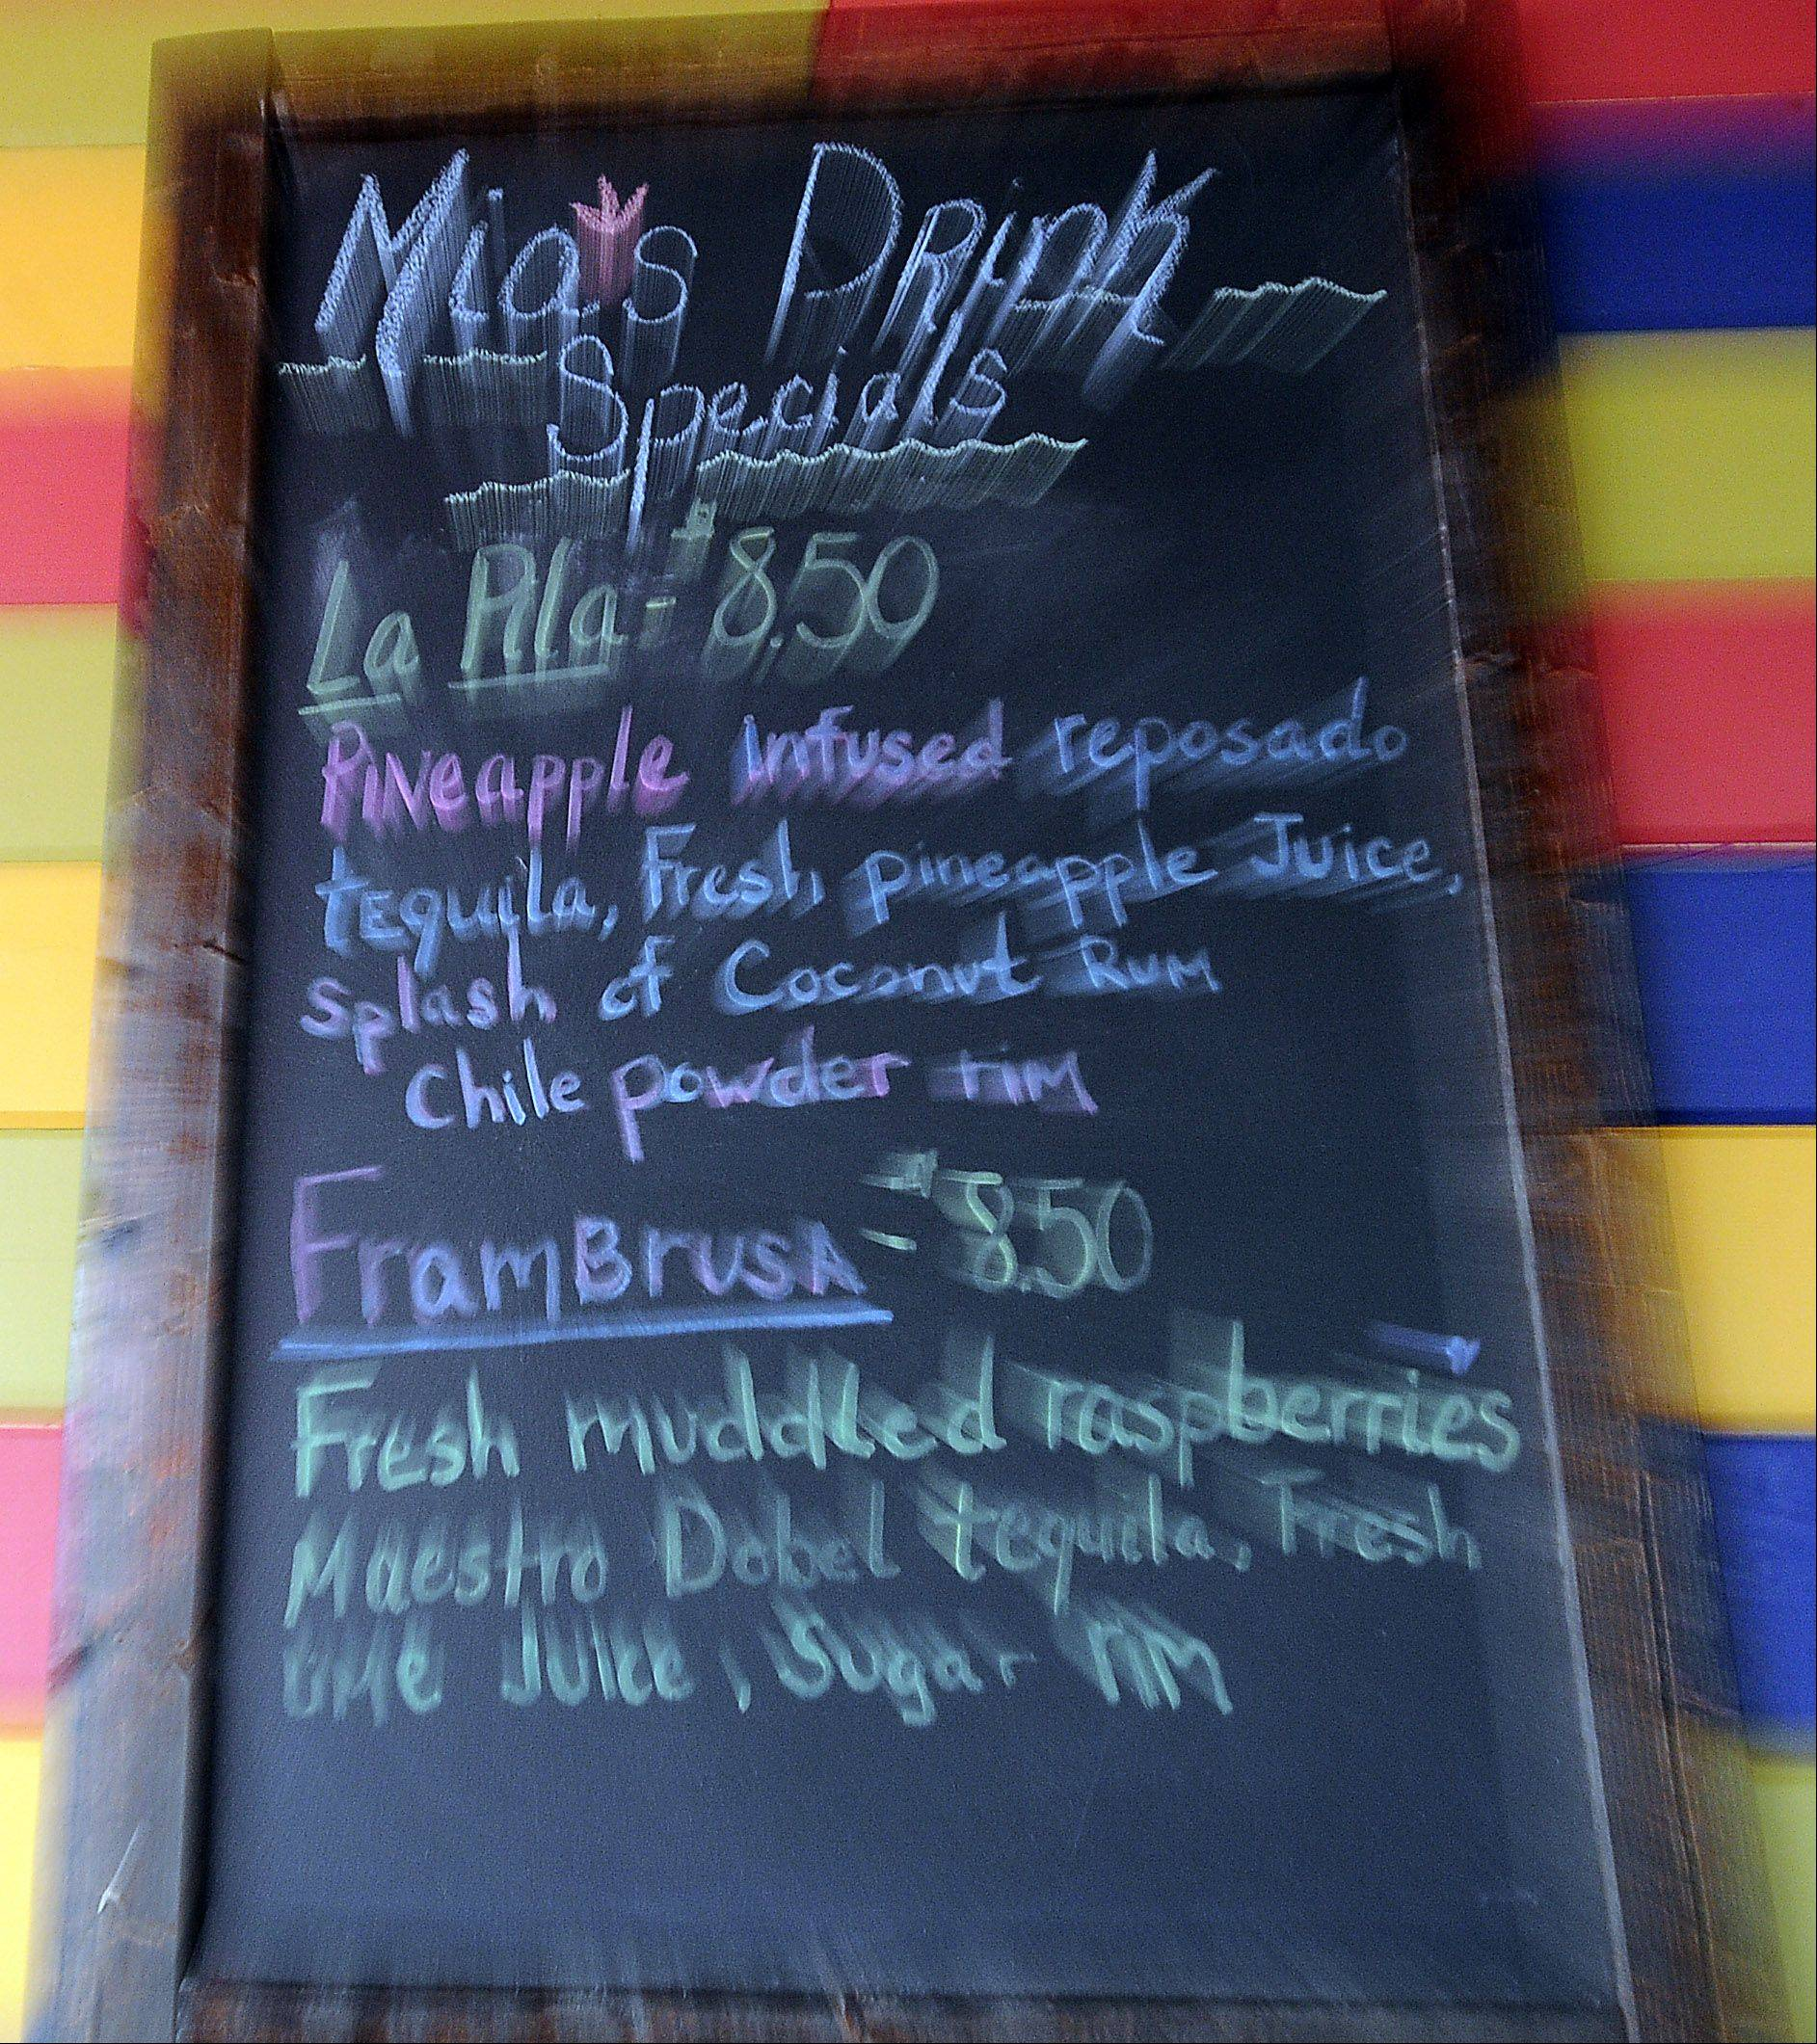 Mia's Cantina restaurant in Mount Prospect displays drink specials on a handwritten board.